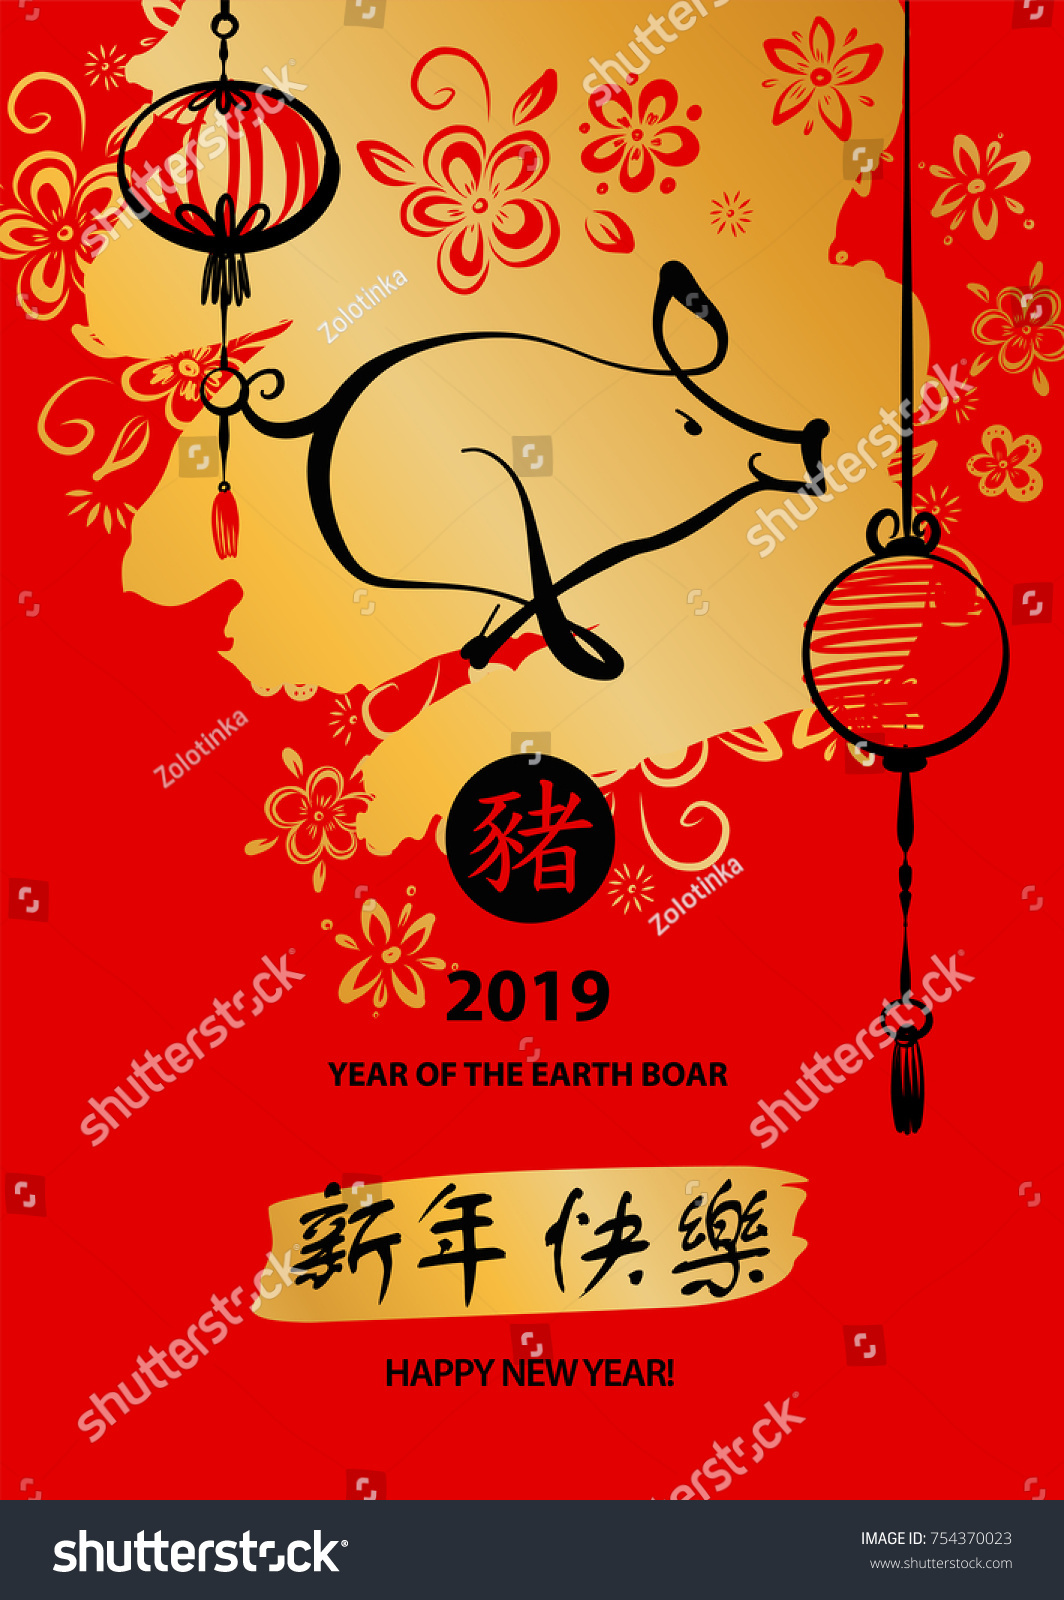 Image Of Pig Boar Chinese Hieroglyph Translate Happy New Year And